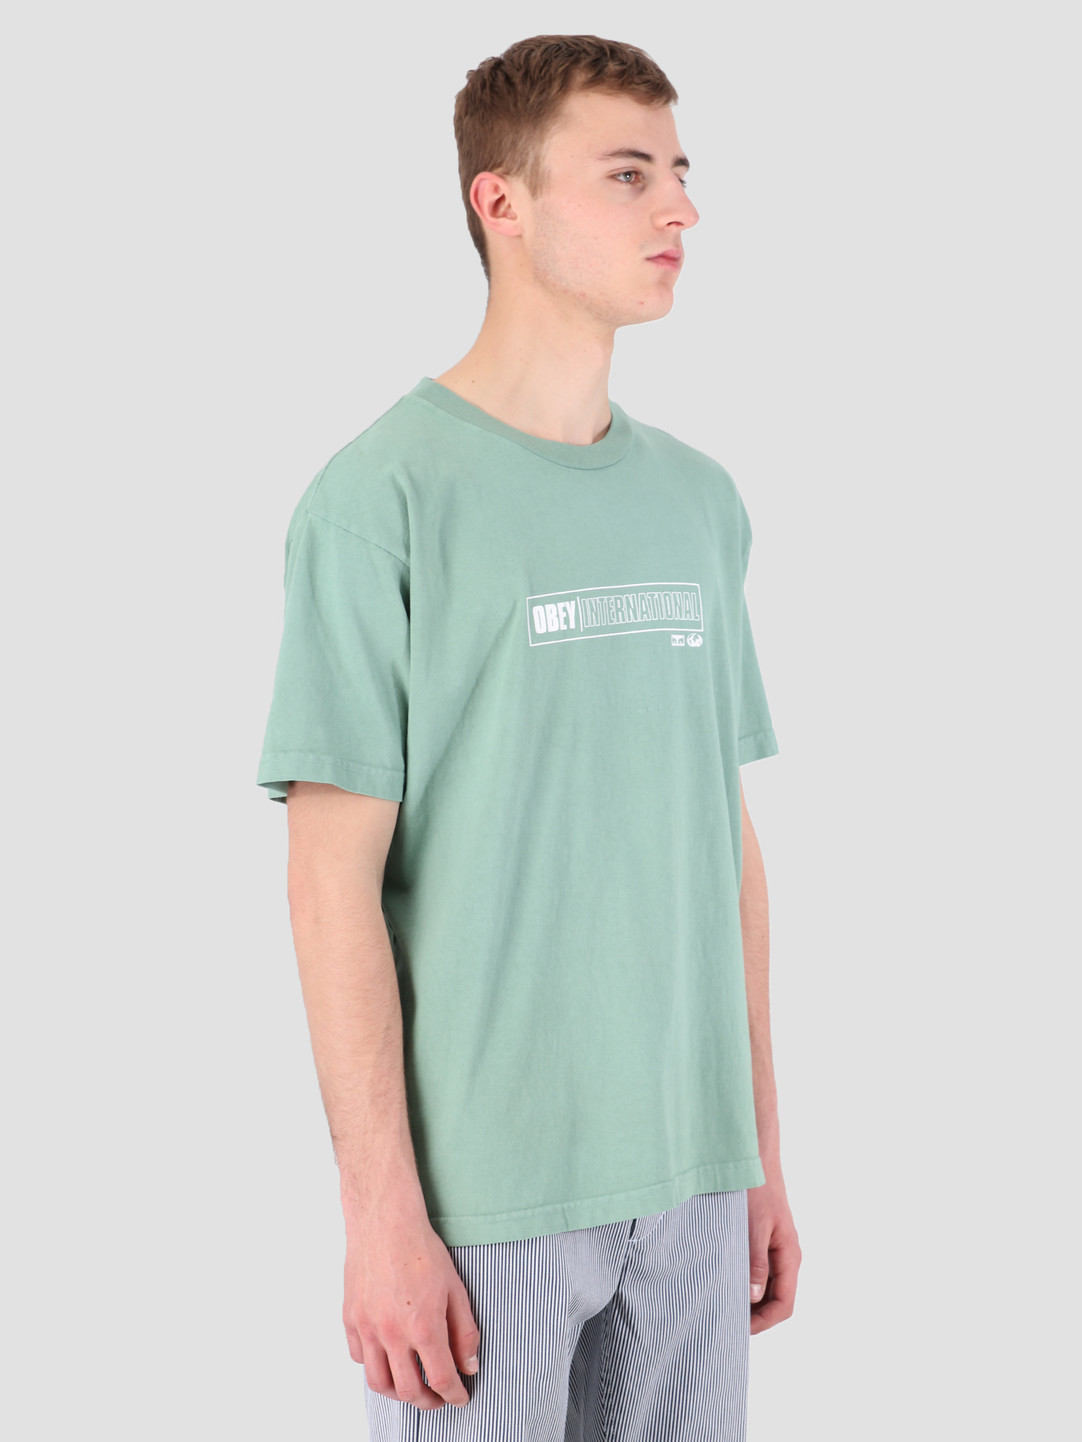 Obey Obey Obey Intl. Cities Classic Box T-Shirt ATL 166911893